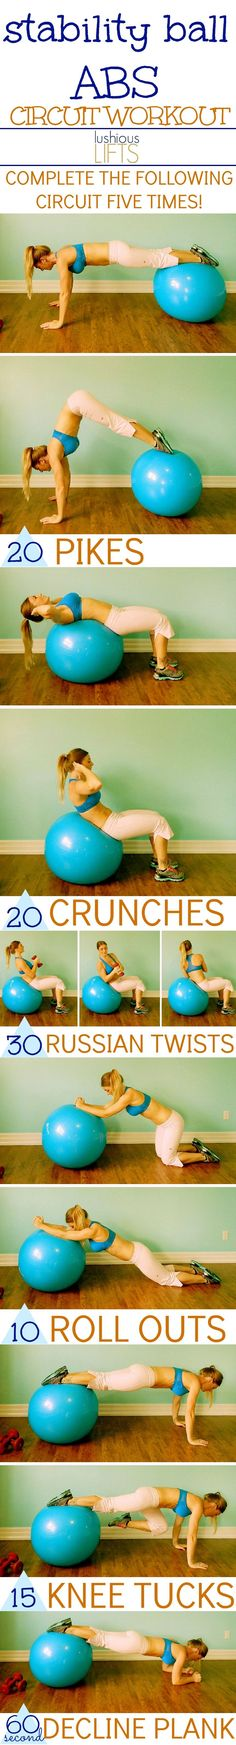 I don't usually work abs, but when I do, I make it 5 rounds! GO! (stability ball ab circuit workout)